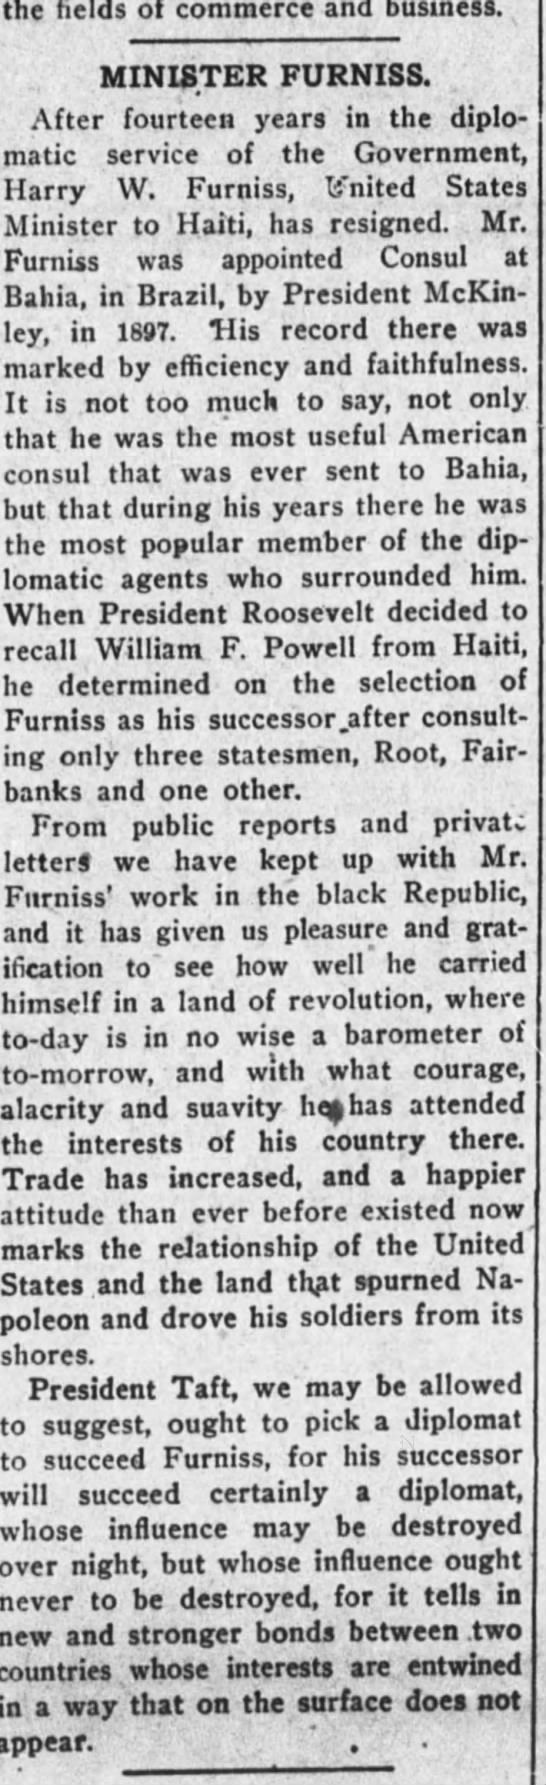 furniss nyage - the fields of commerce and business, MINISTER...